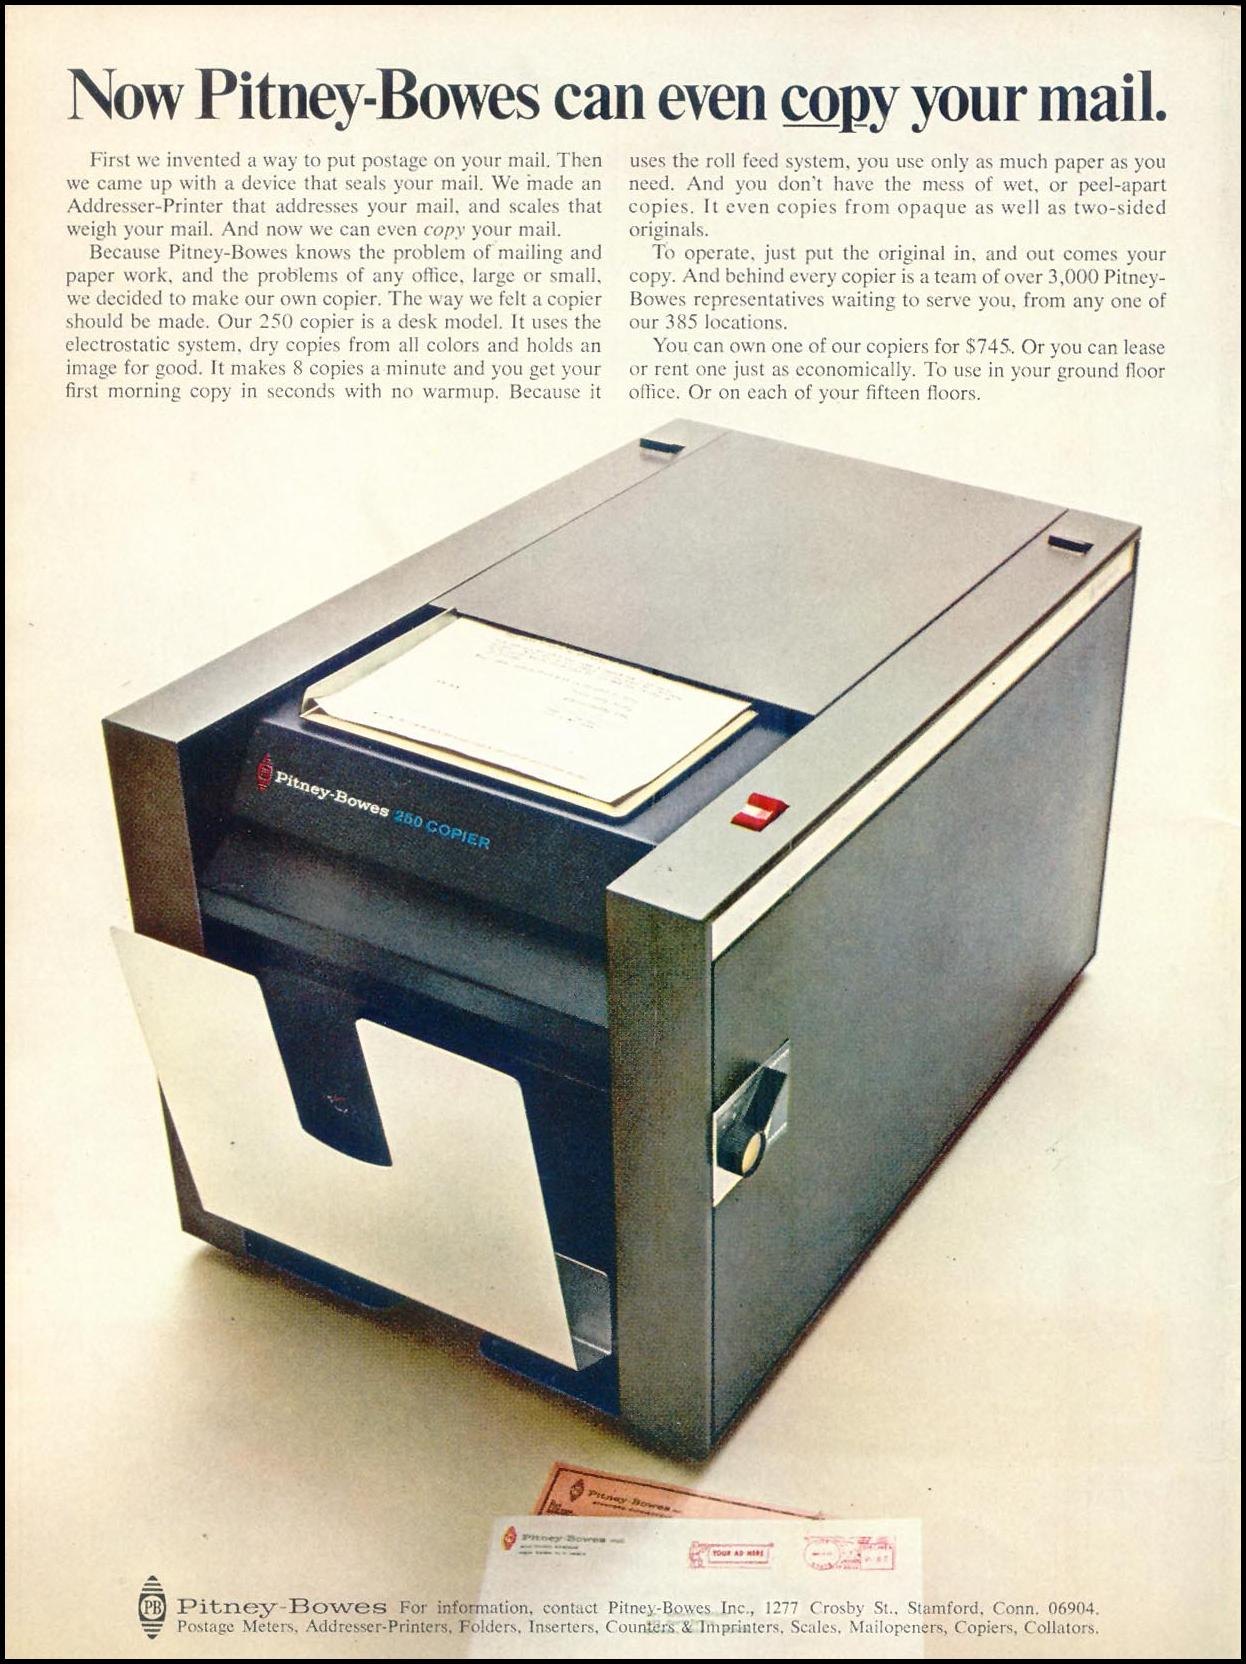 PITNEY-BOWES COPIERS TIME 04/21/1967 INSIDE FRONT